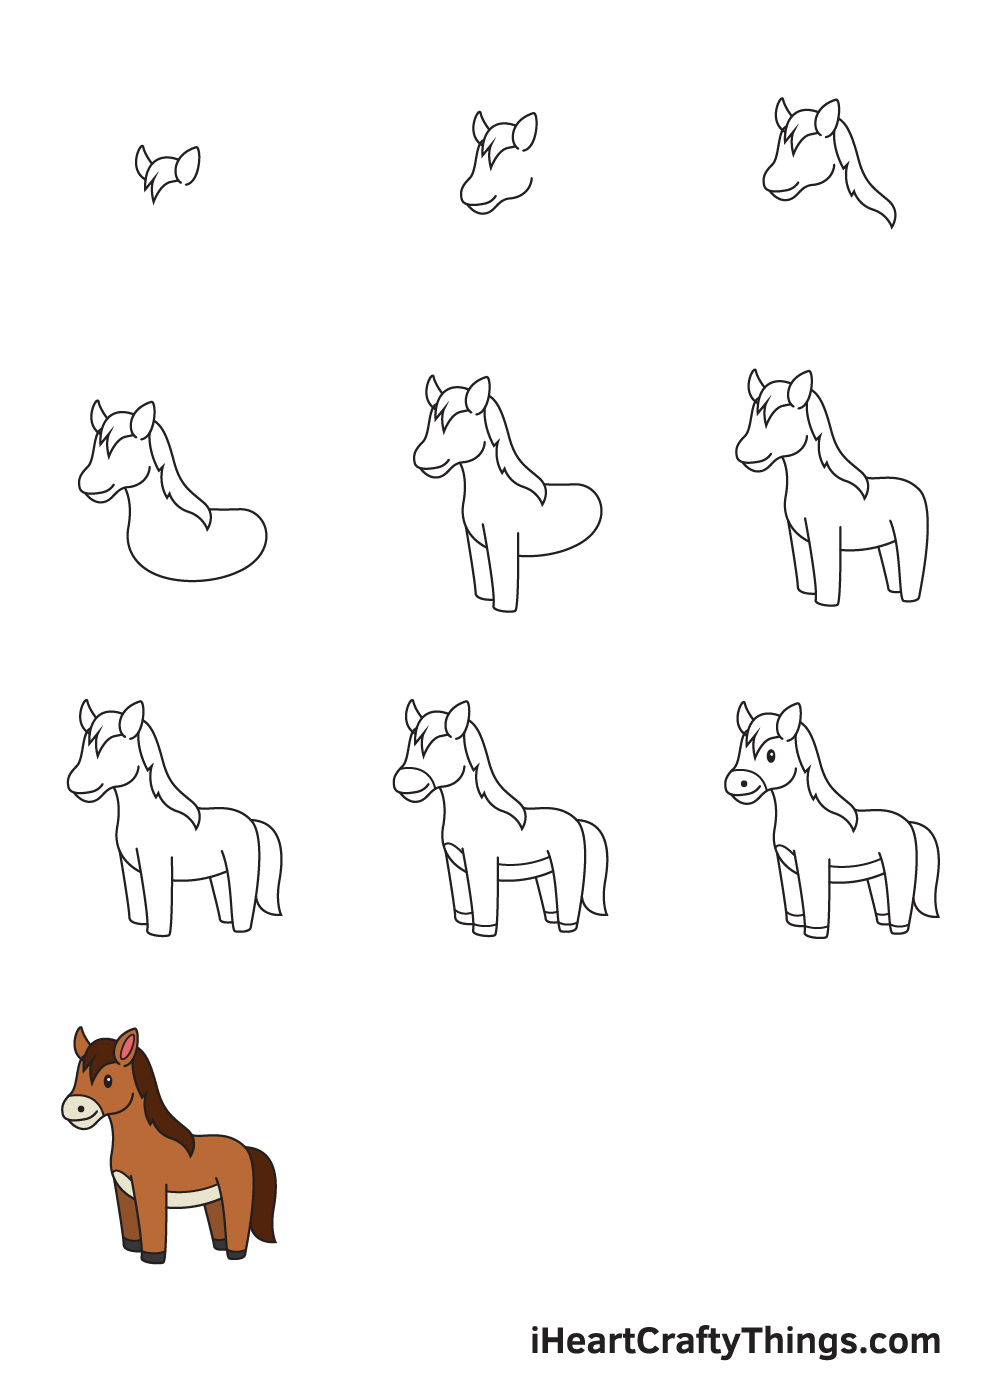 drawing a horse in 9 steps